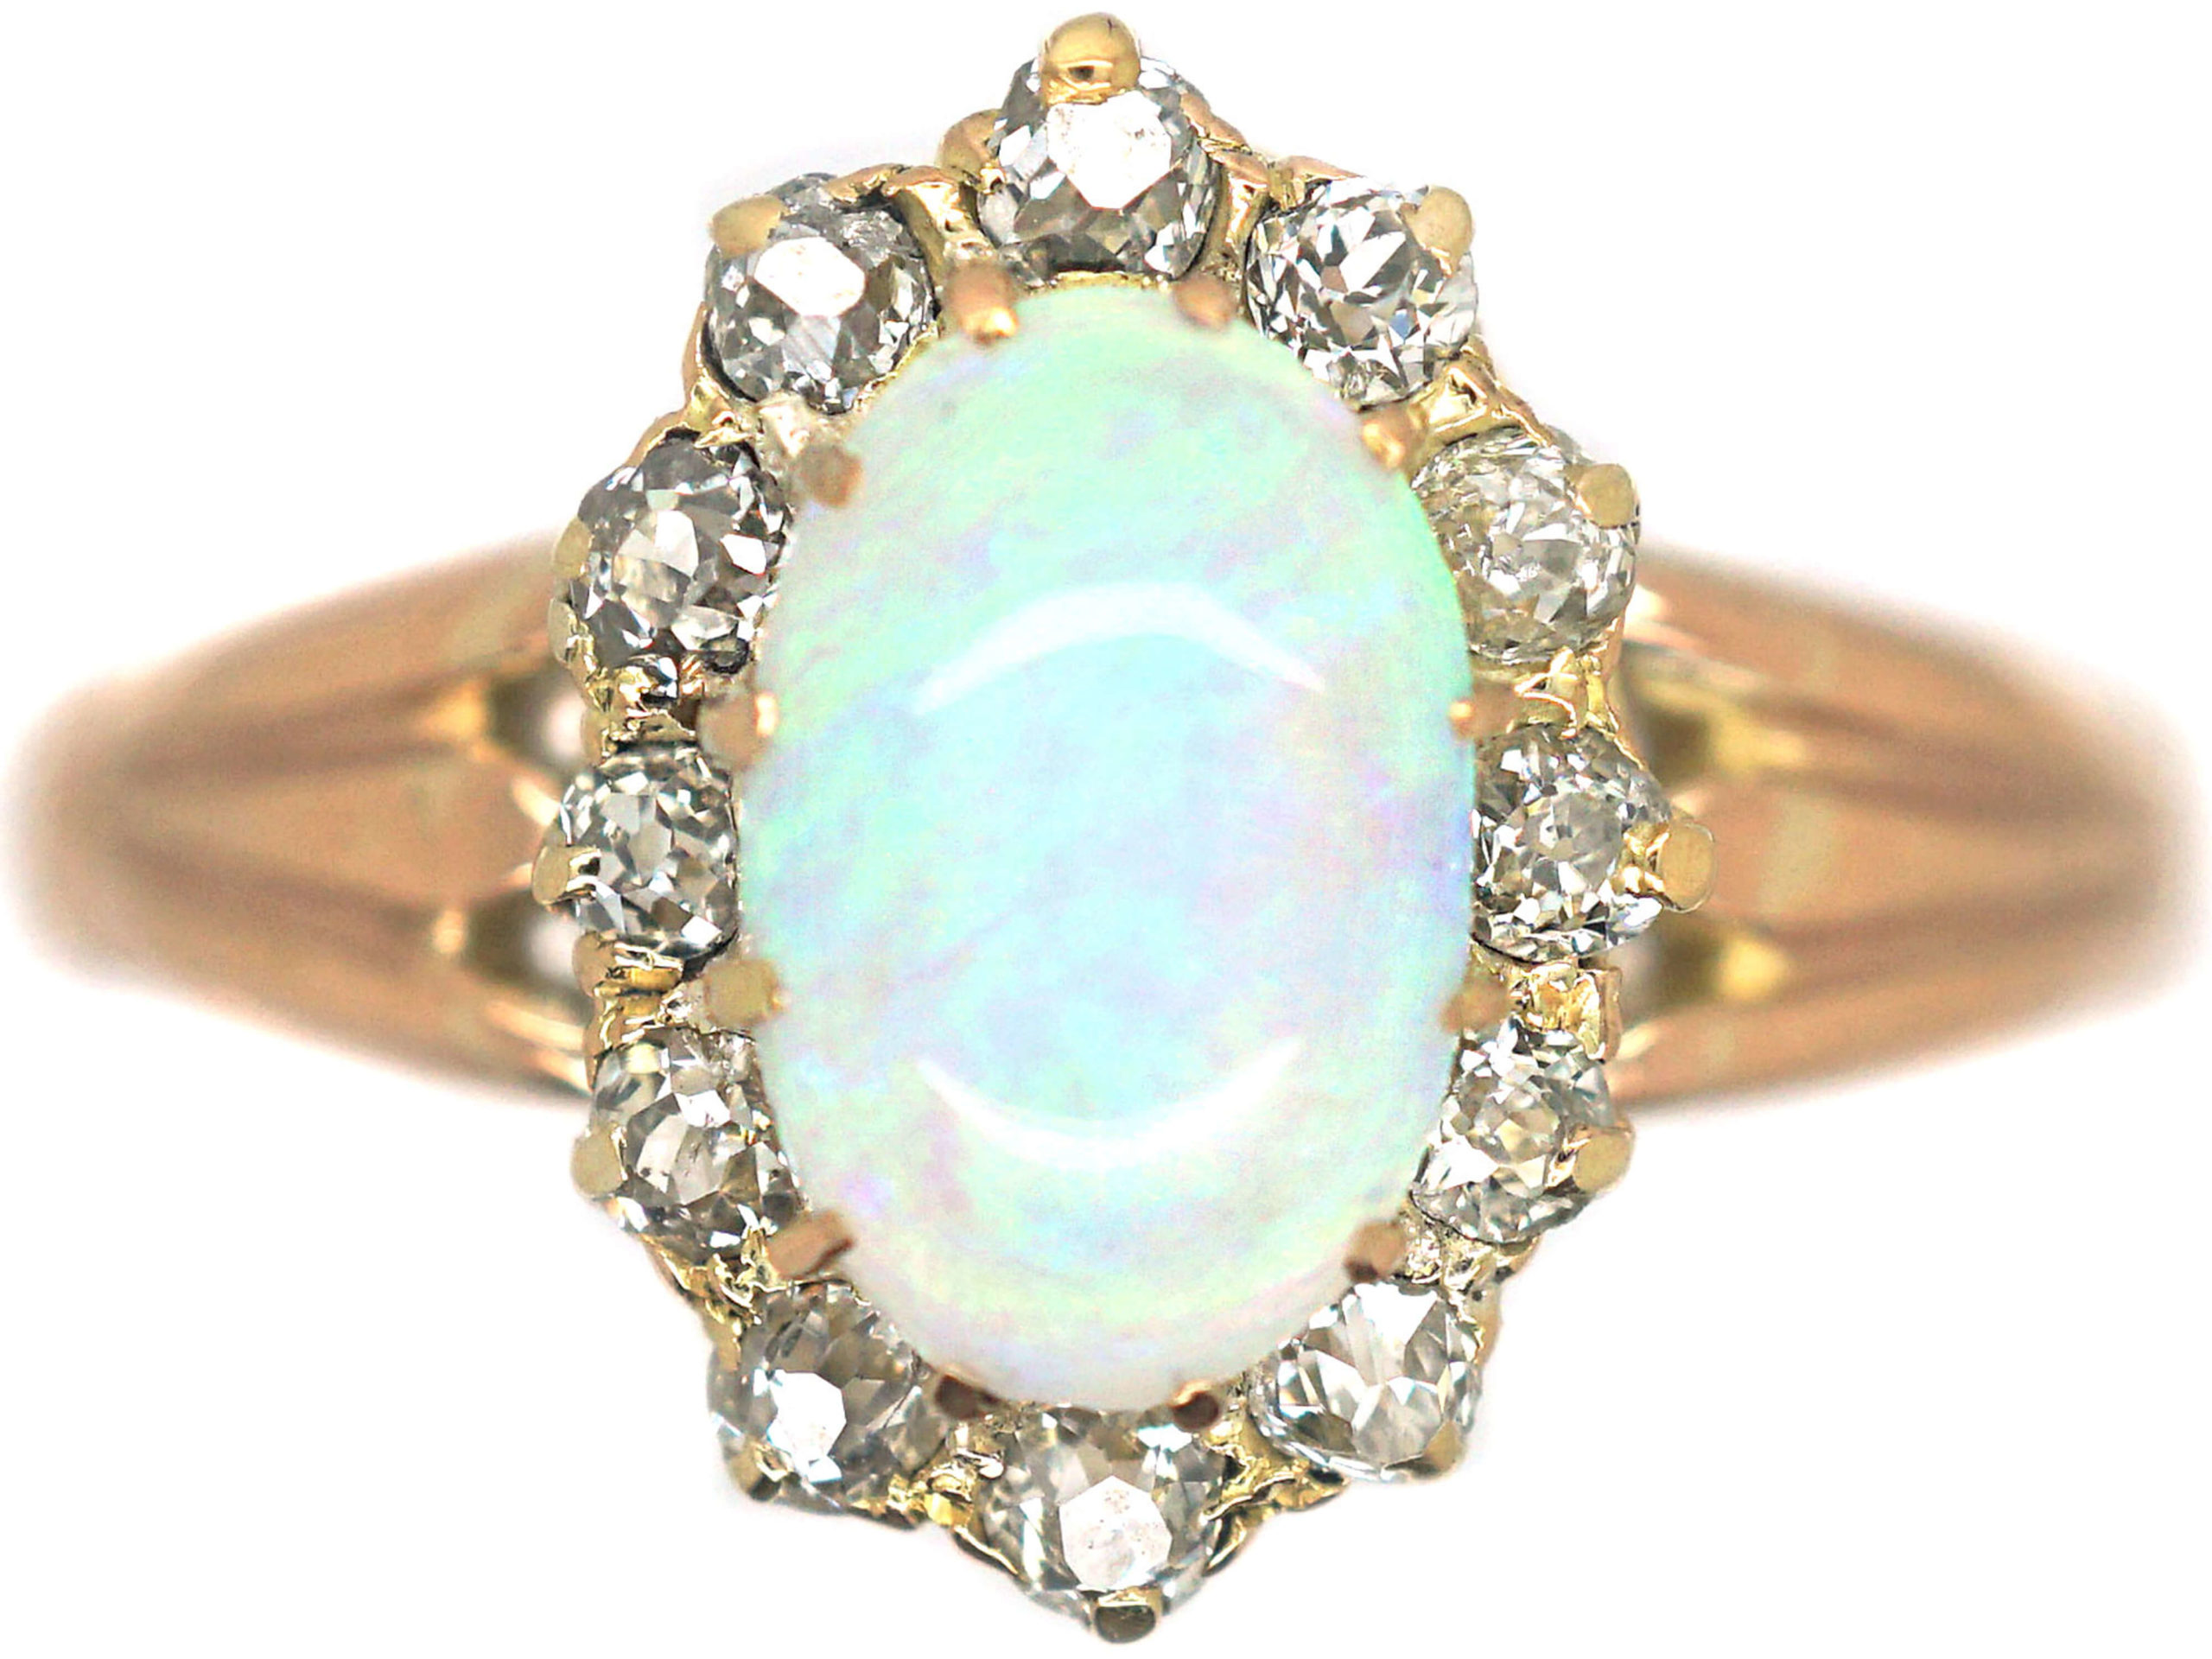 Edwardian 15ct Gold, Opal & Diamond Oval Cluster Ring